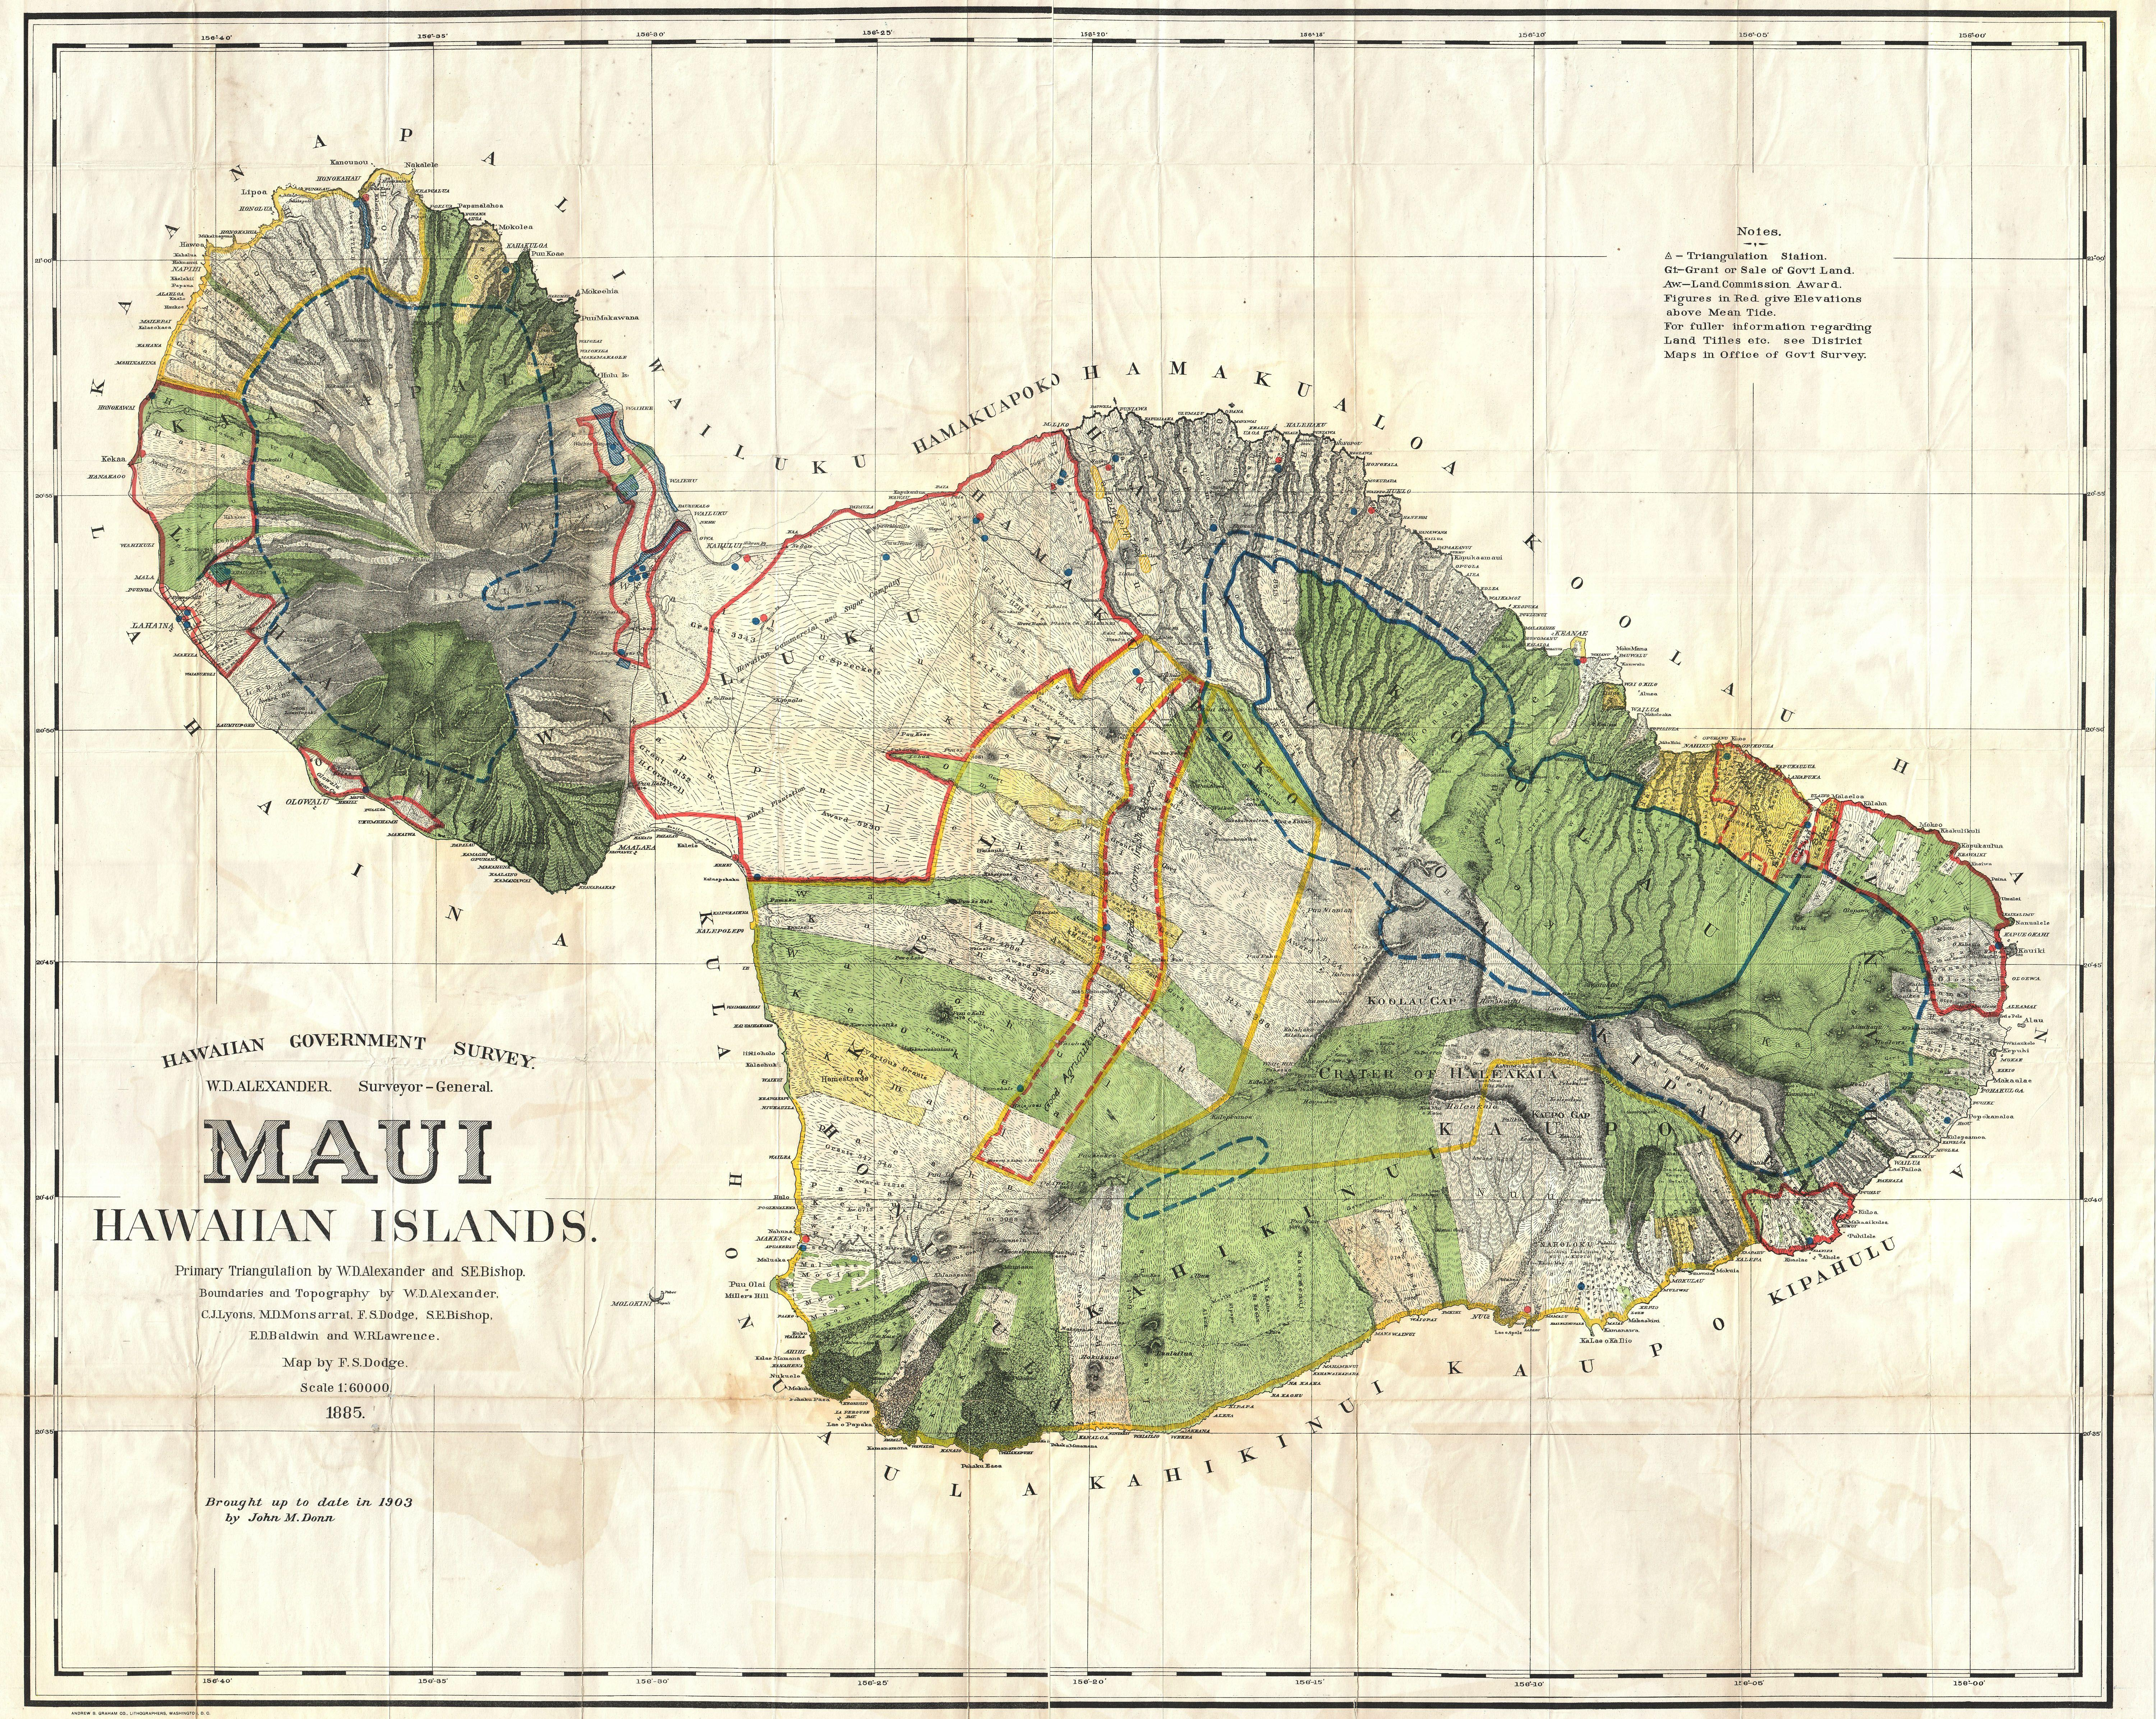 Photo source: https://upload.wikimedia.org/wikipedia/commons/6/6e/1885_De_Witt_Alexander_Wall_Map_of_Maui,_Hawaii_-_Geographicus_-_Maui-lo-1885.jpggoogle images, labeled for reuse, 12.2015